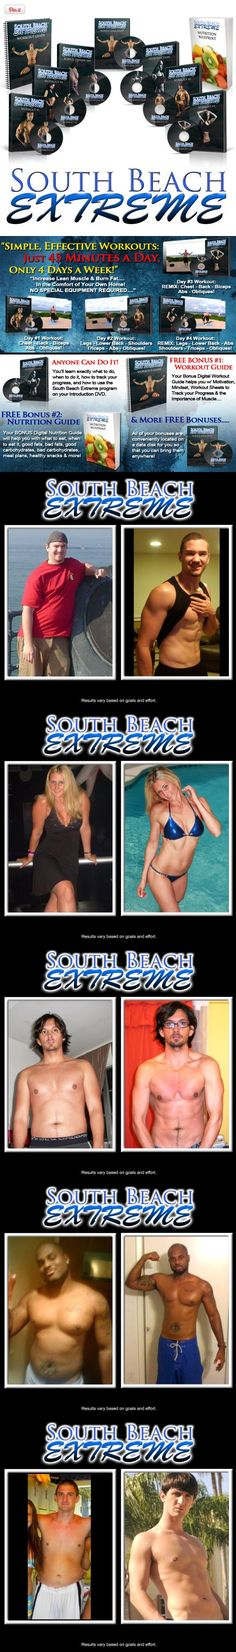 SOUTH BEACH EXTREME Workout DVDs & Home Fitness DVD Program, Are You Sick of Long, Crazy & Complicated Workouts That Make You Hate Fitness and Keep You Fat and Out-of-Shape?  South Beach Extreme may just be the answer you've been looking for. In this 4 day-per-..., #Sporting Goods, #Exercise Videos Extreme Workouts, Fun Workouts, At Home Workouts, Best Workout Dvds, Fitness Dvd, Exercise Videos, Out Of Shape, Fit Board Workouts, South Beach